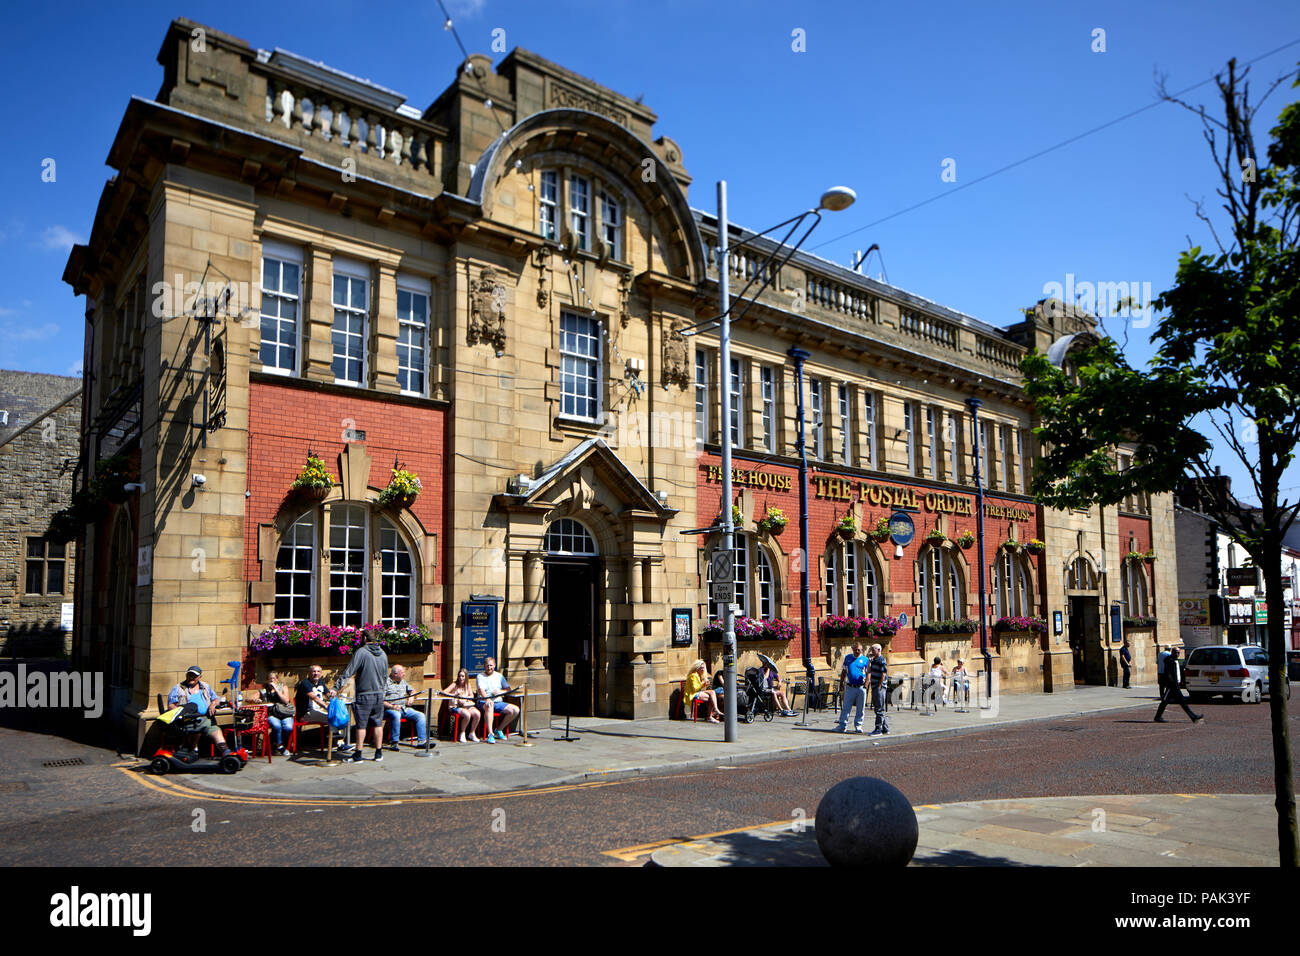 Blackbun town centre  in Lancashire, Blackburn's former general post office, grand, Edwardian now The Postal Order  a large  Wetherspoon pub - Stock Image